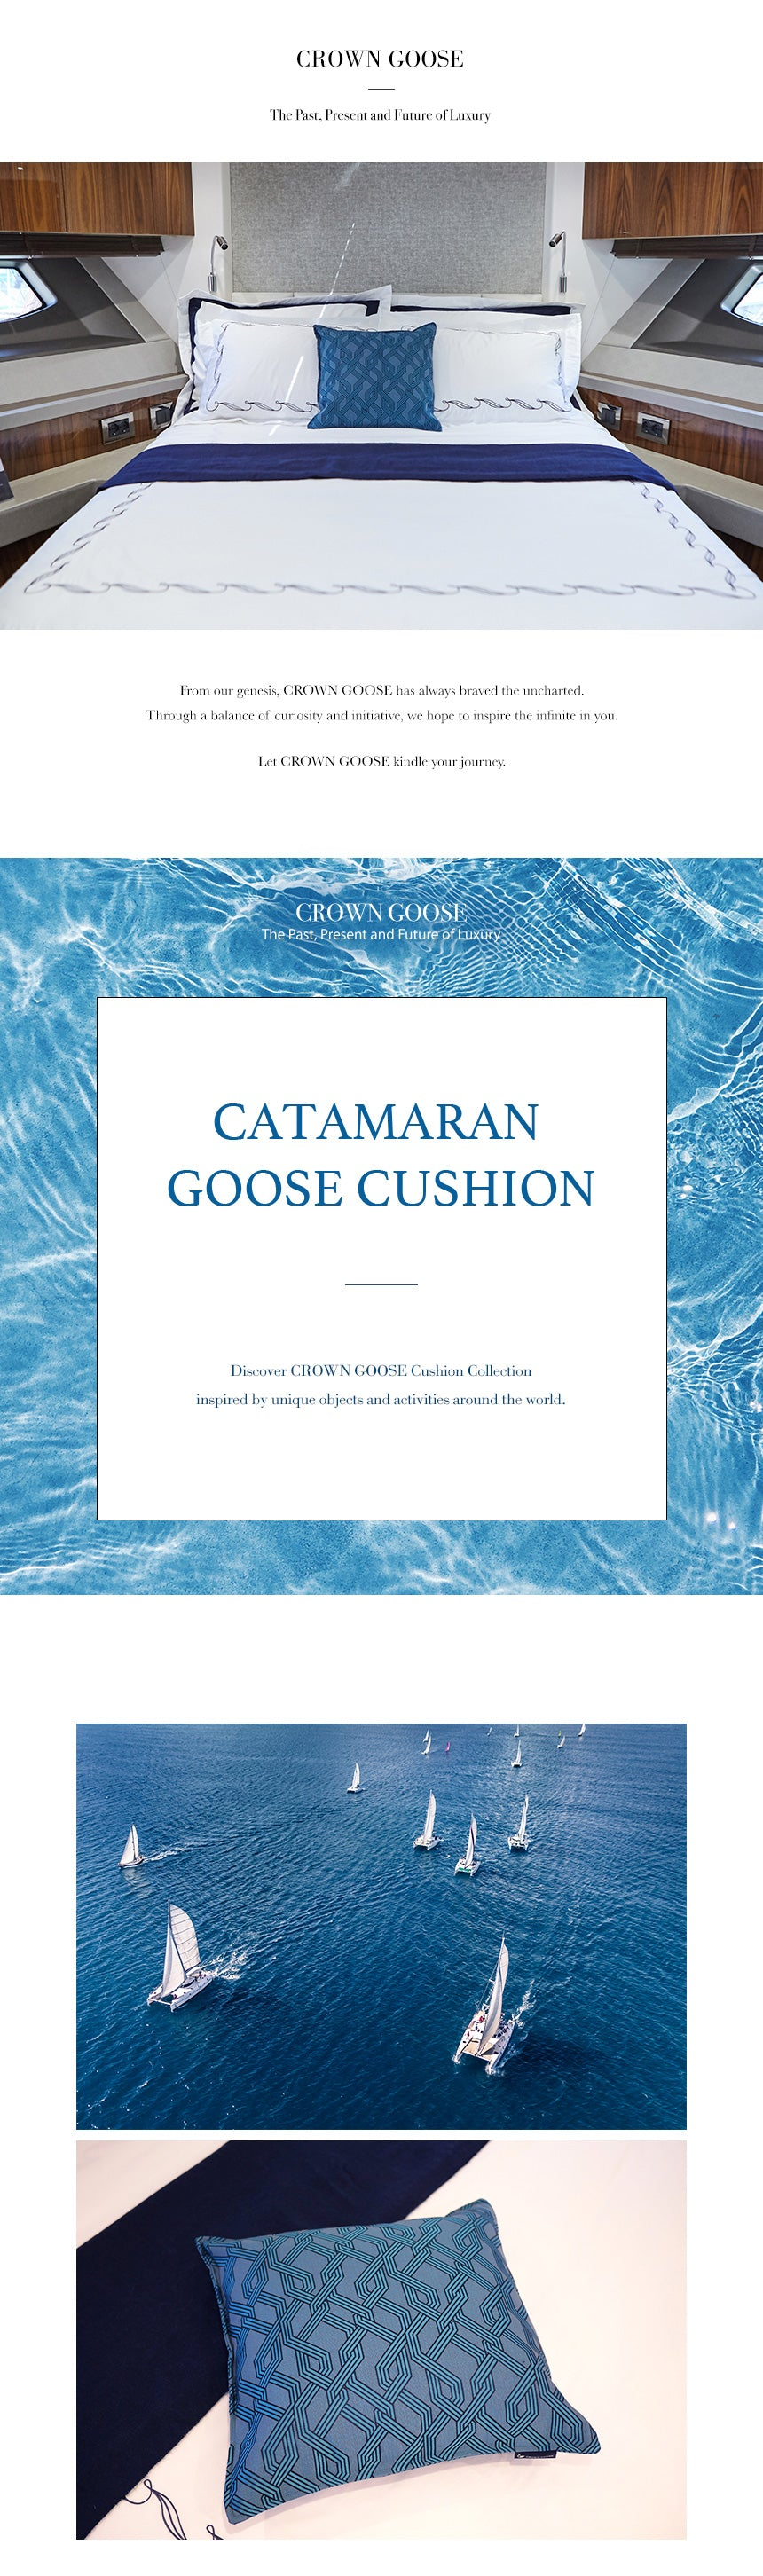 catamaran cushion_crowngoose